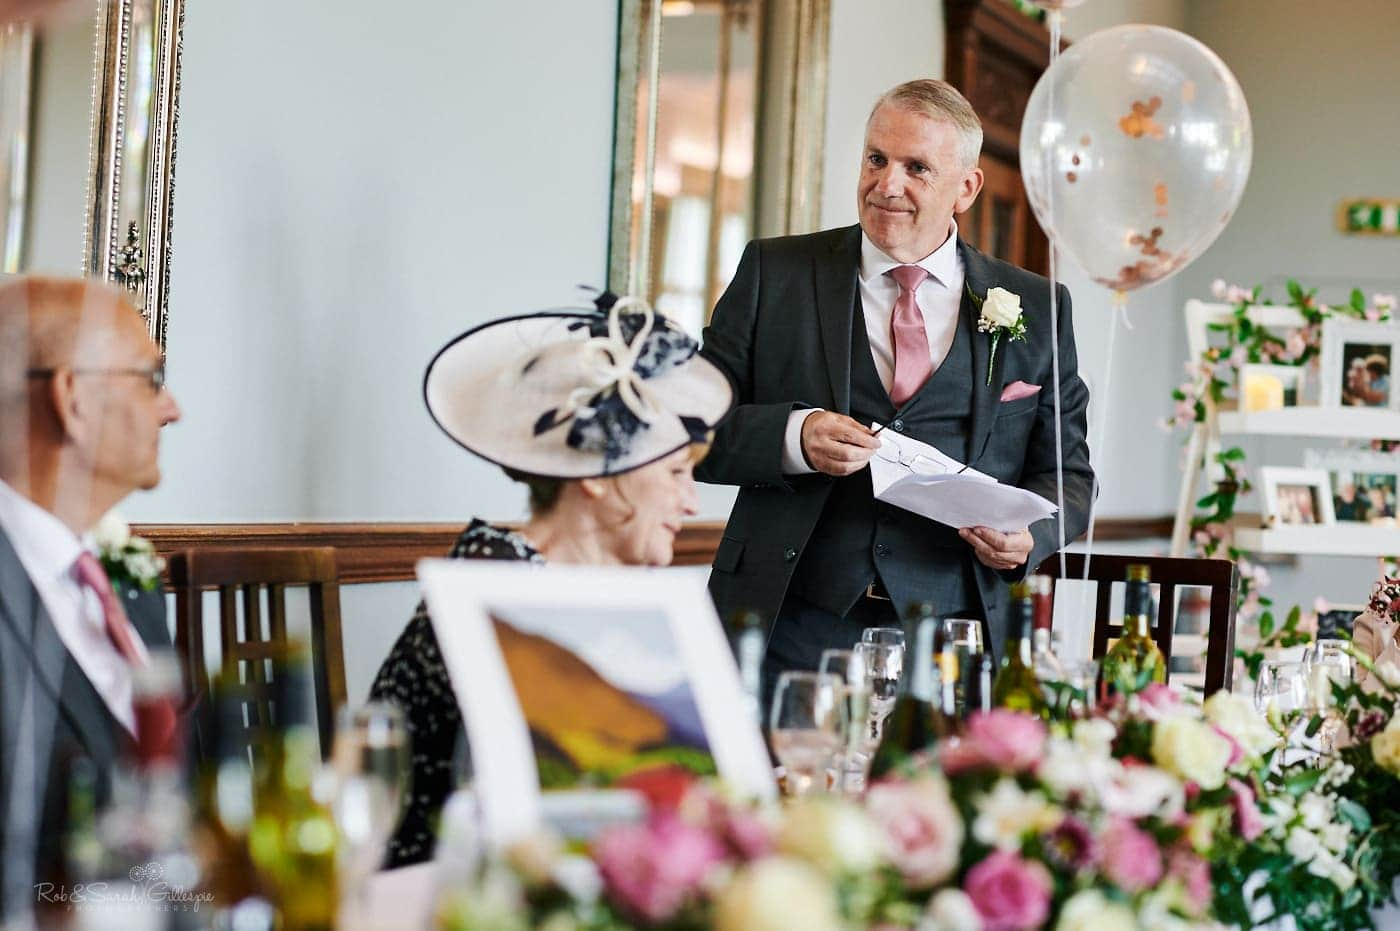 Speeches at small wedding in Ballroom at Pendrell Hall